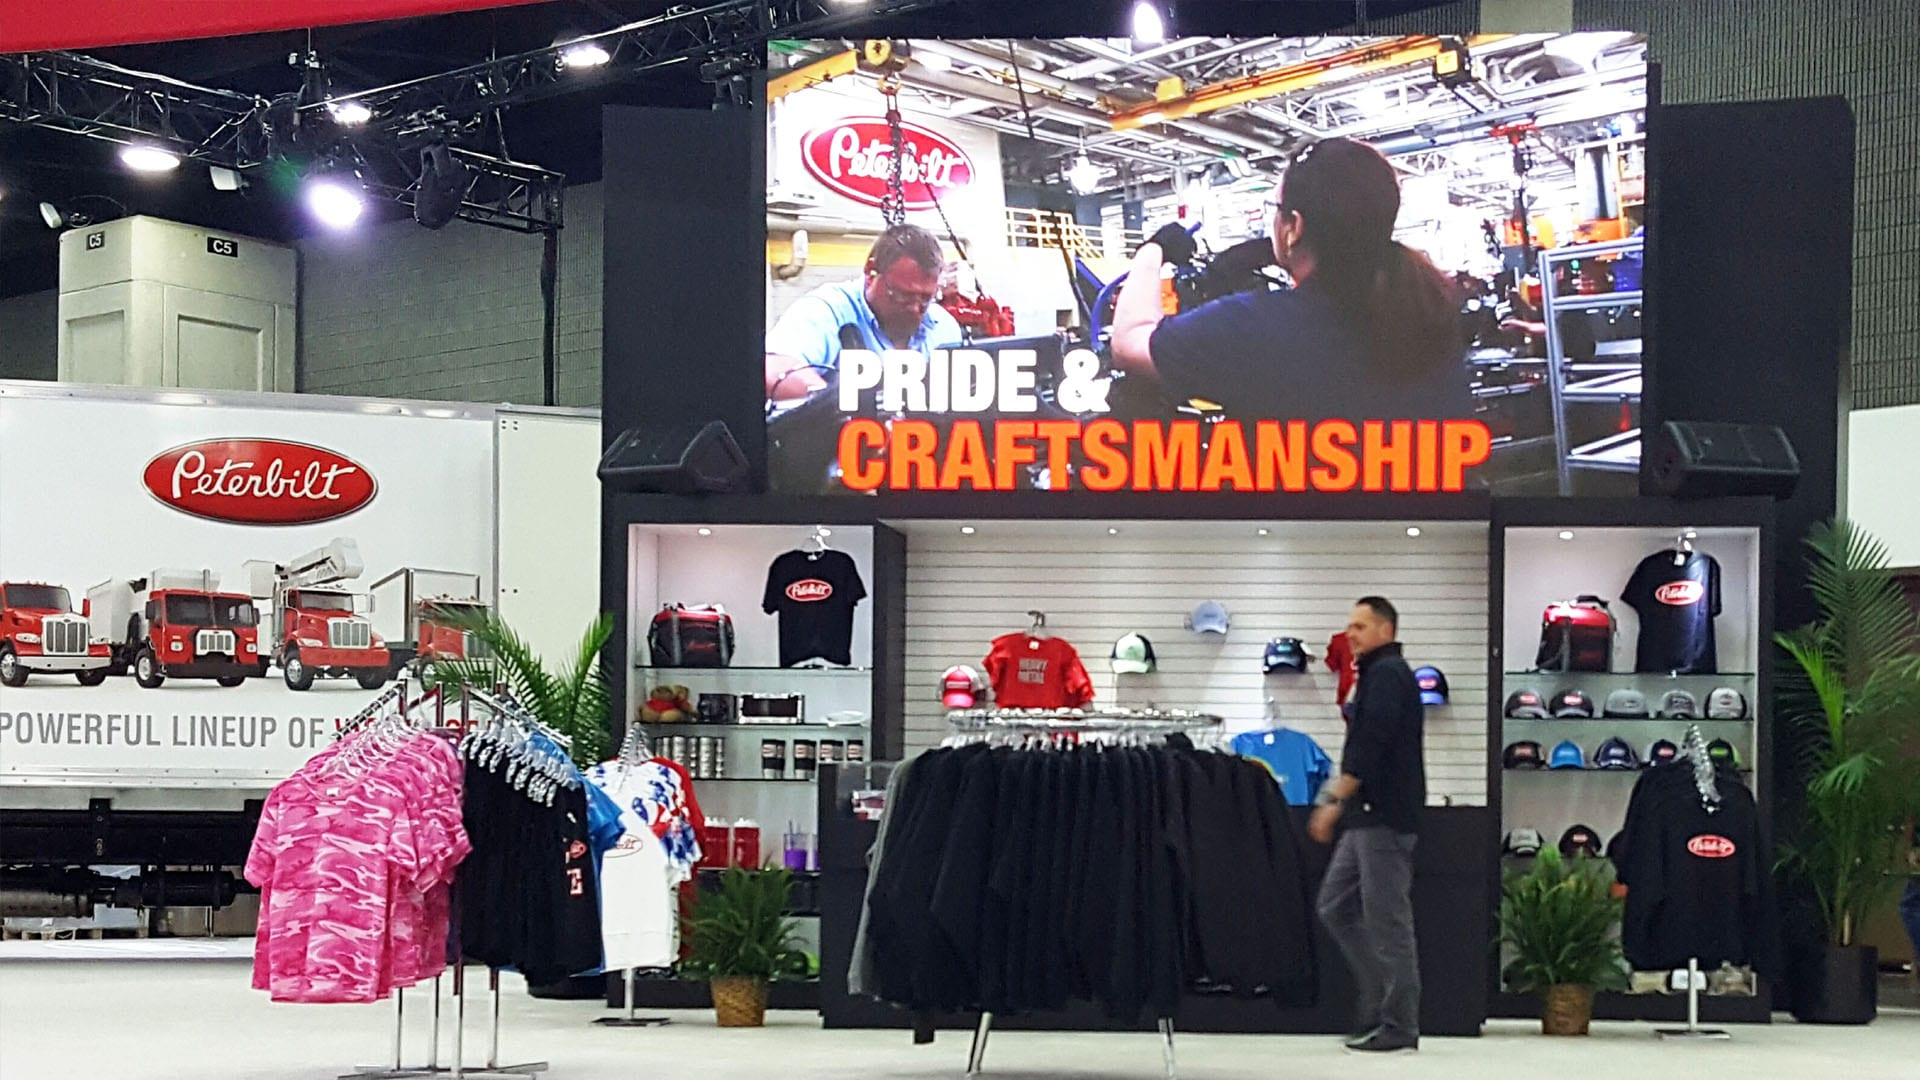 Neoti LED wall for Peterbilt at Mid America Truck Show